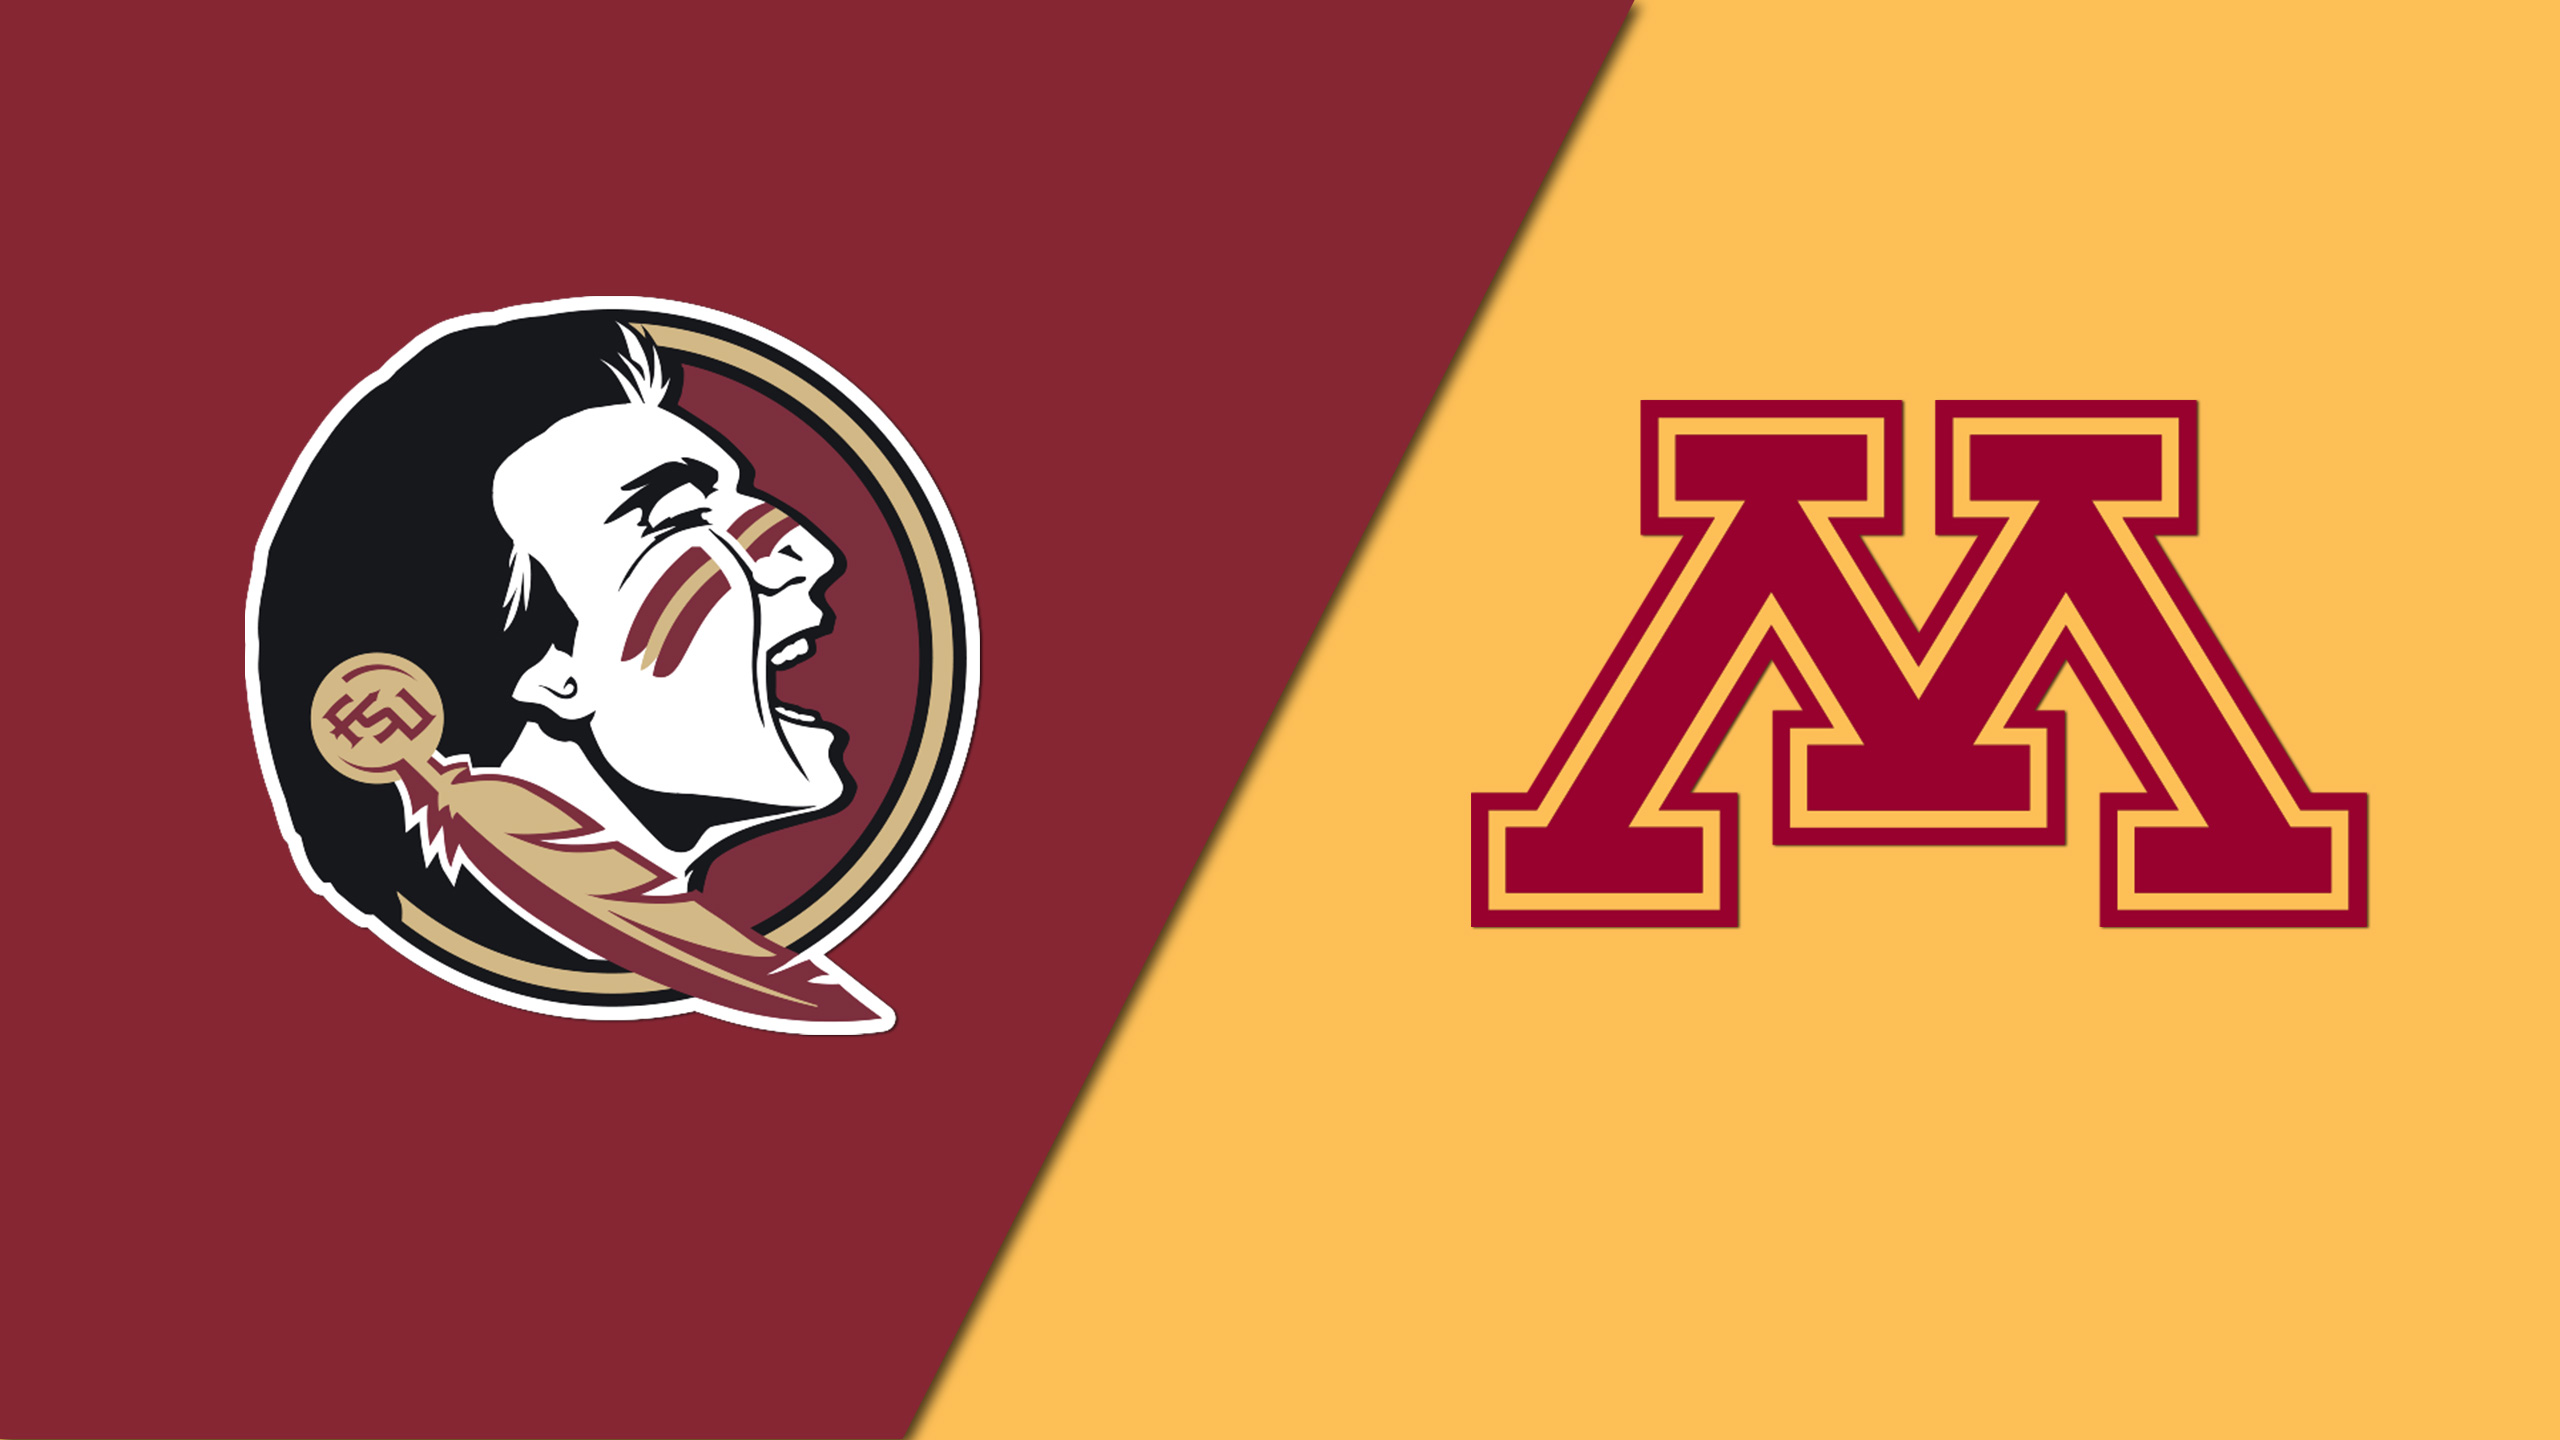 #2 Florida State vs. Minnesota (Softball)